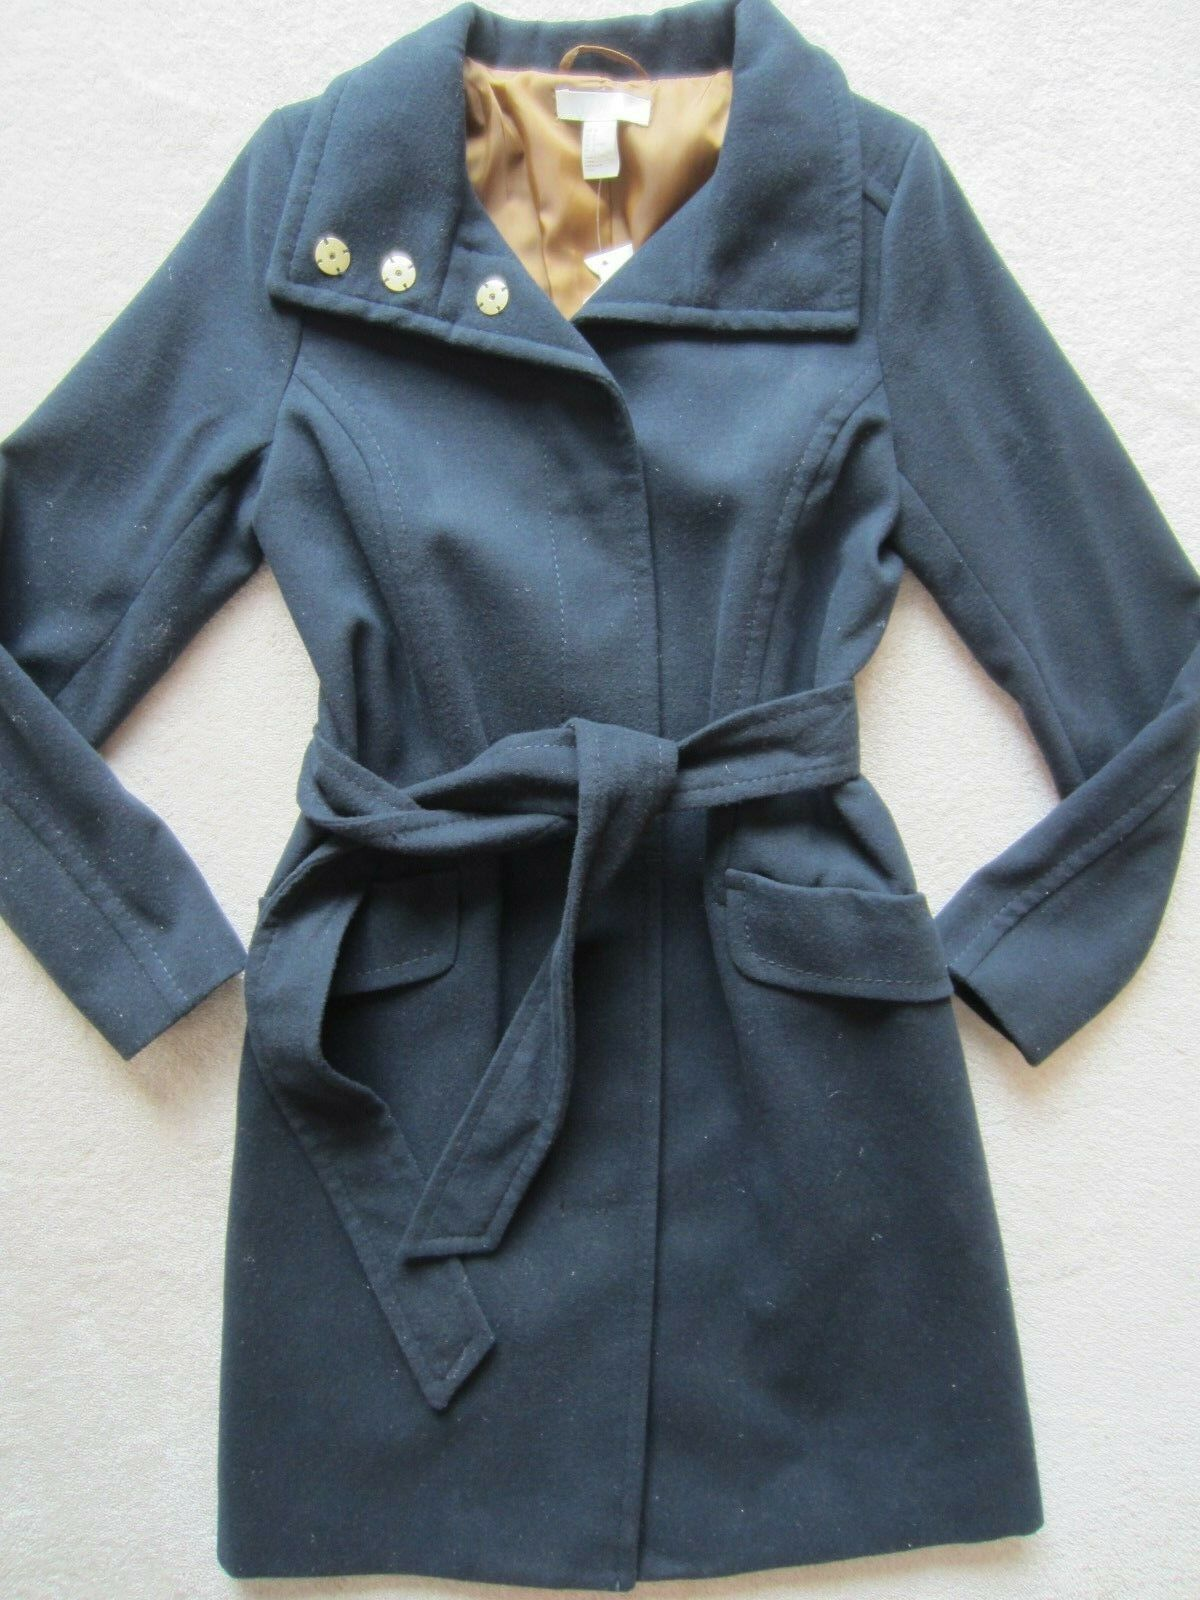 H&M Women's Navy bluee Long Peacoat Snap Button and Tie Waist Size 6 US 36 Eur